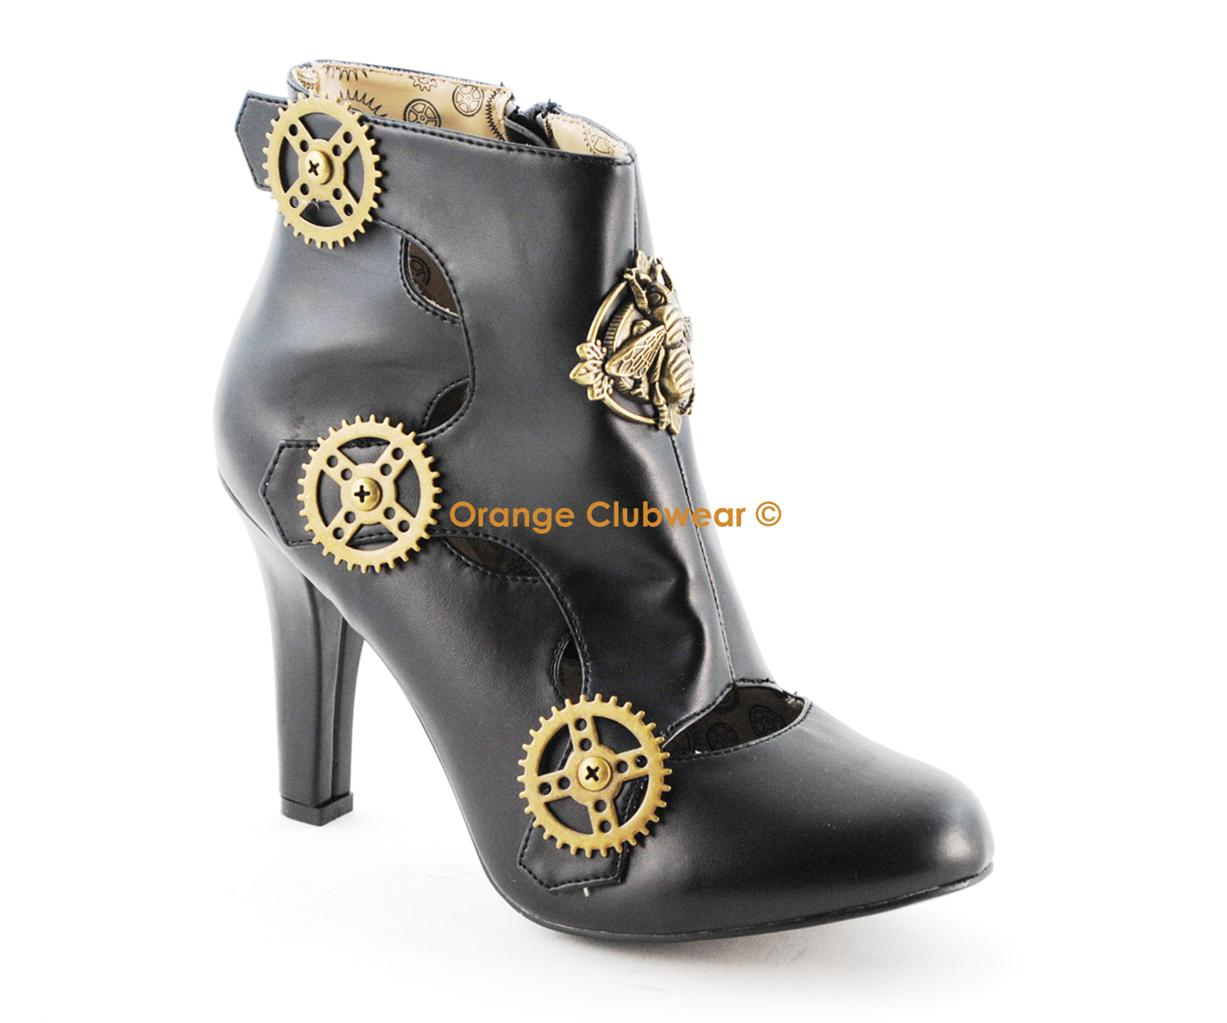 Details about DEMONIA Tesla-12 Women's Steampunk Booties Shoes Heels